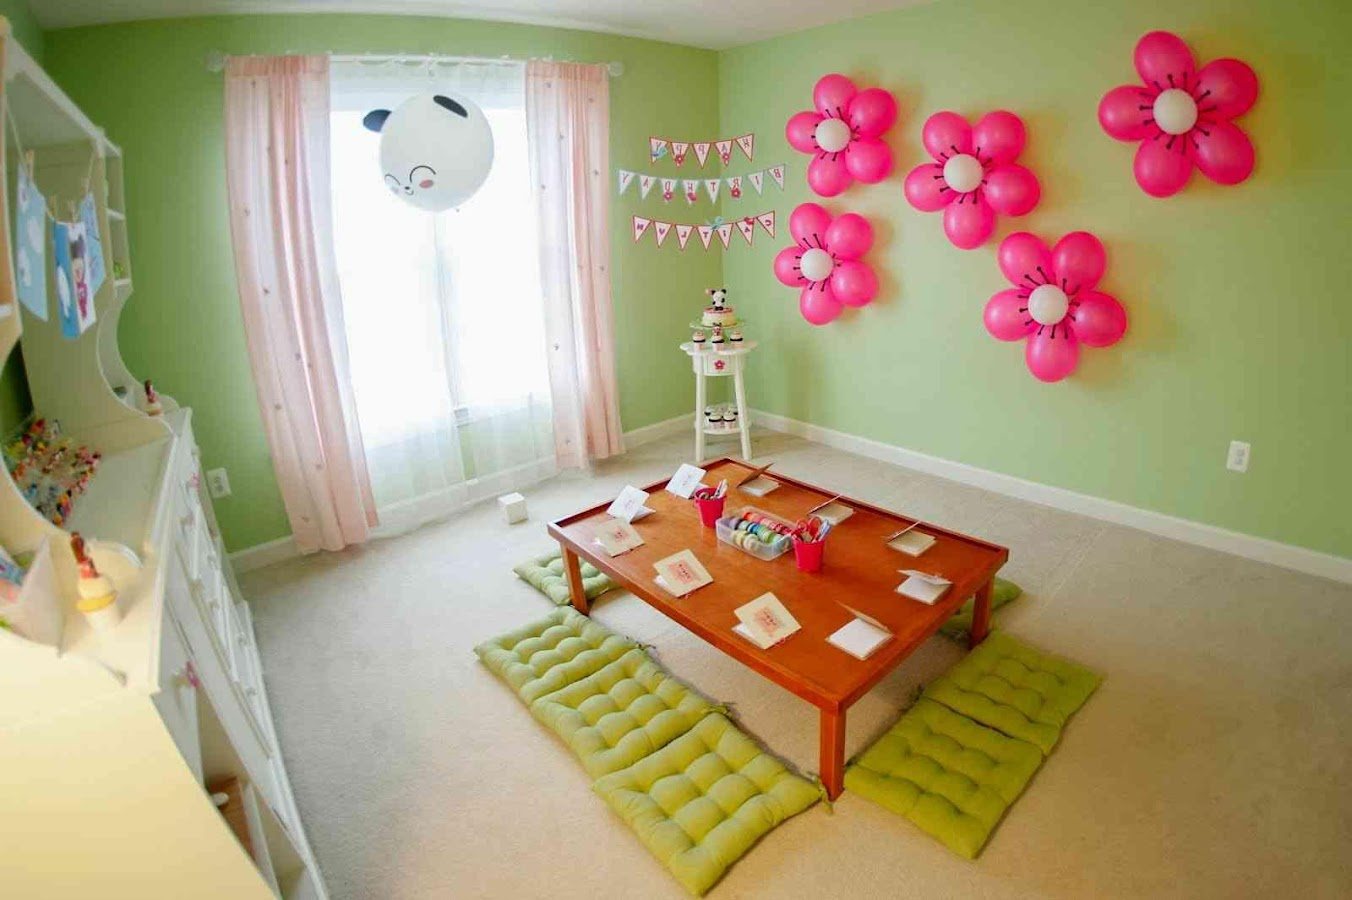 Bday Party Decorations At Home Kids Birthday Party Ideas At Home